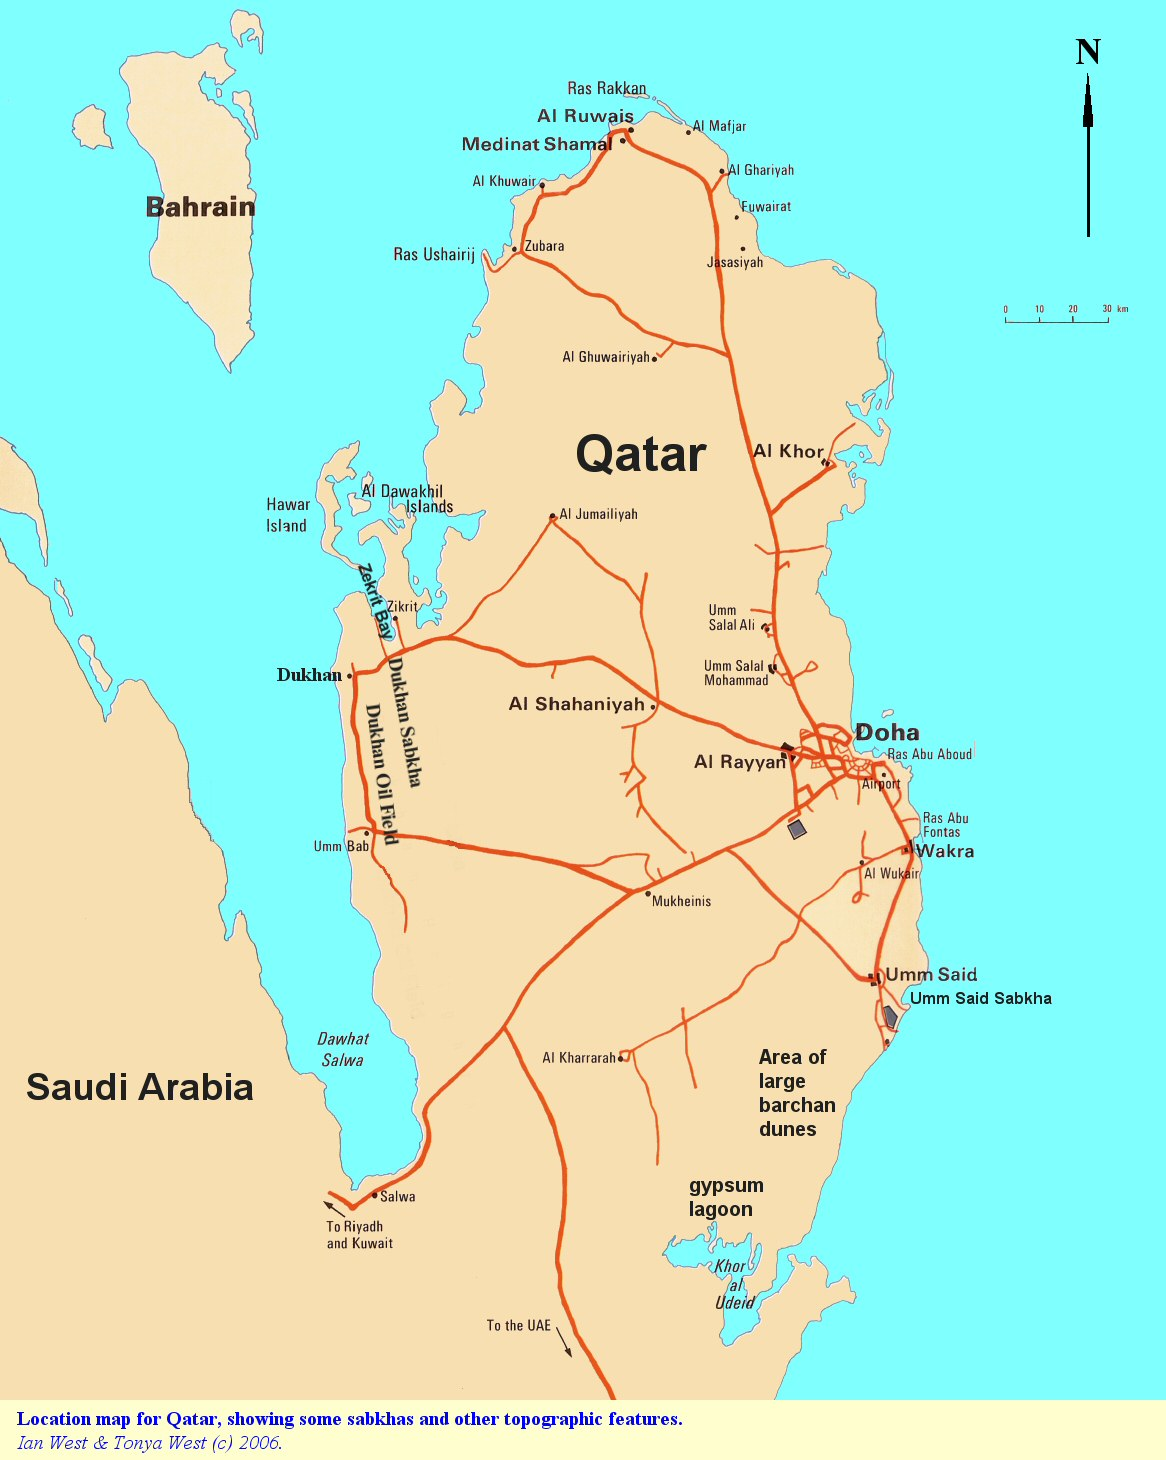 World Map Showing Doha Qatar Gallery Diagram Writing Sample Ideas And Guide